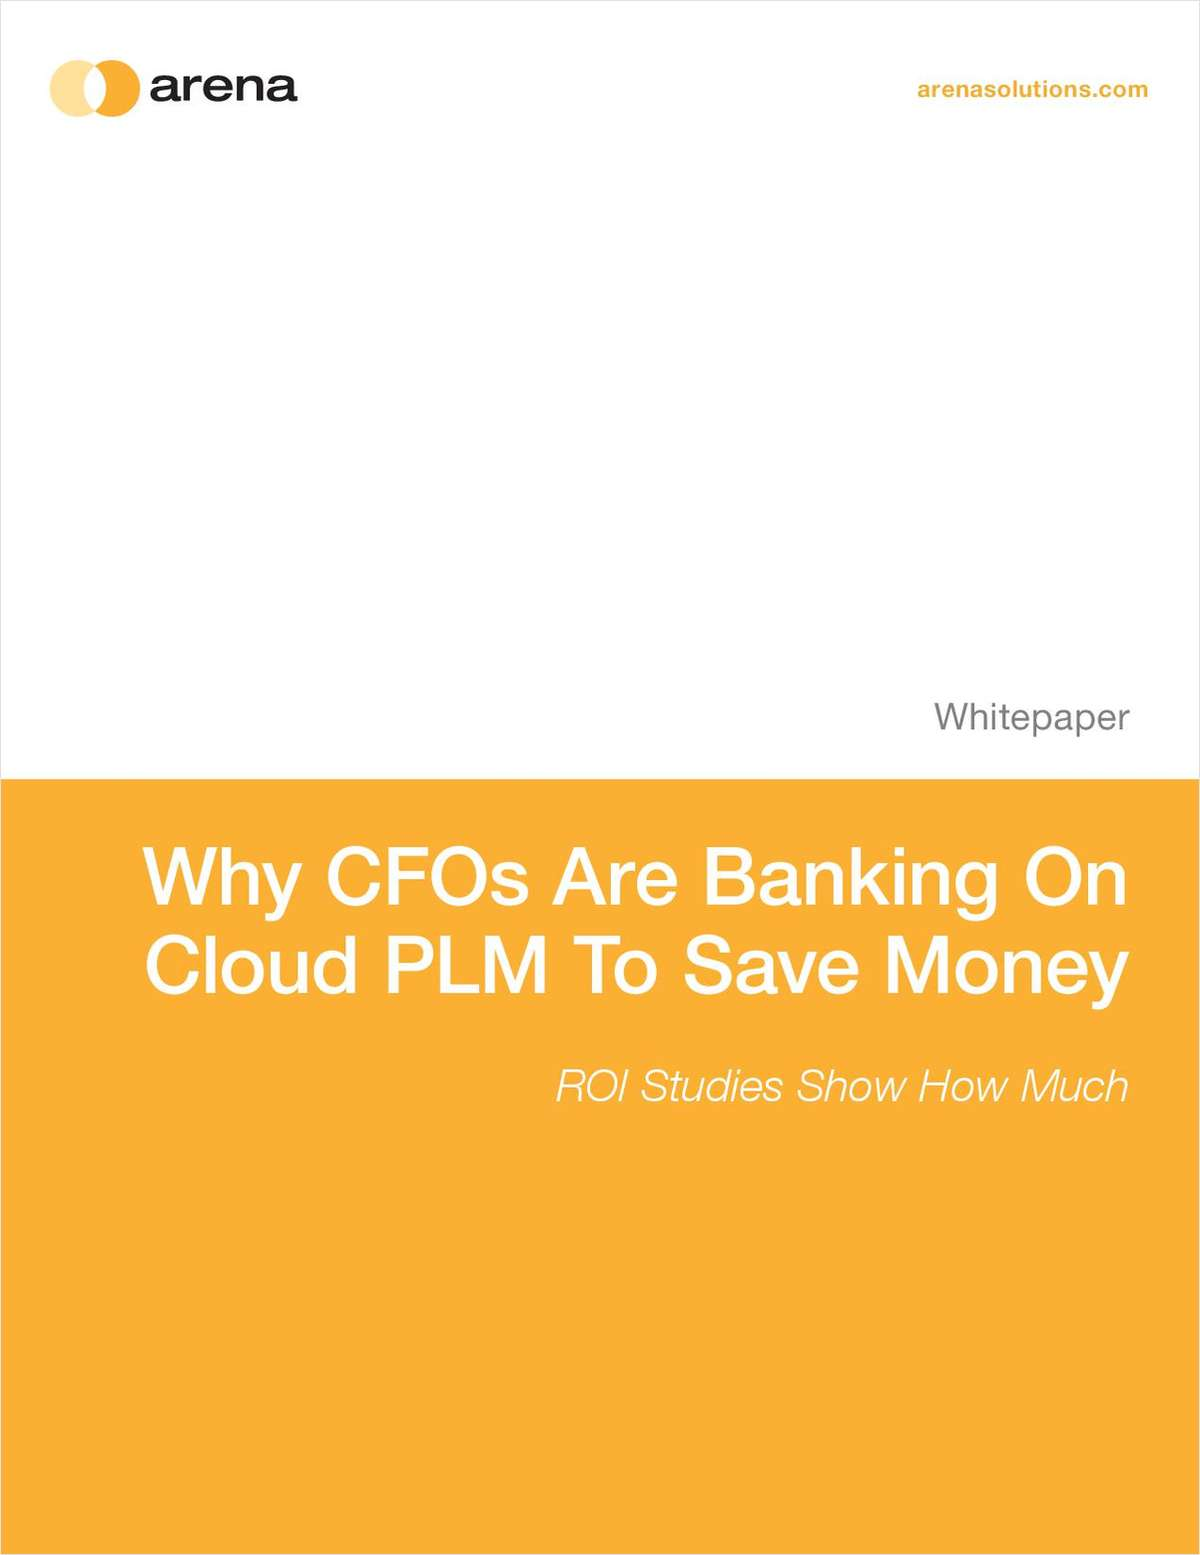 Why More CFOs Are Banking on Cloud-based PLM